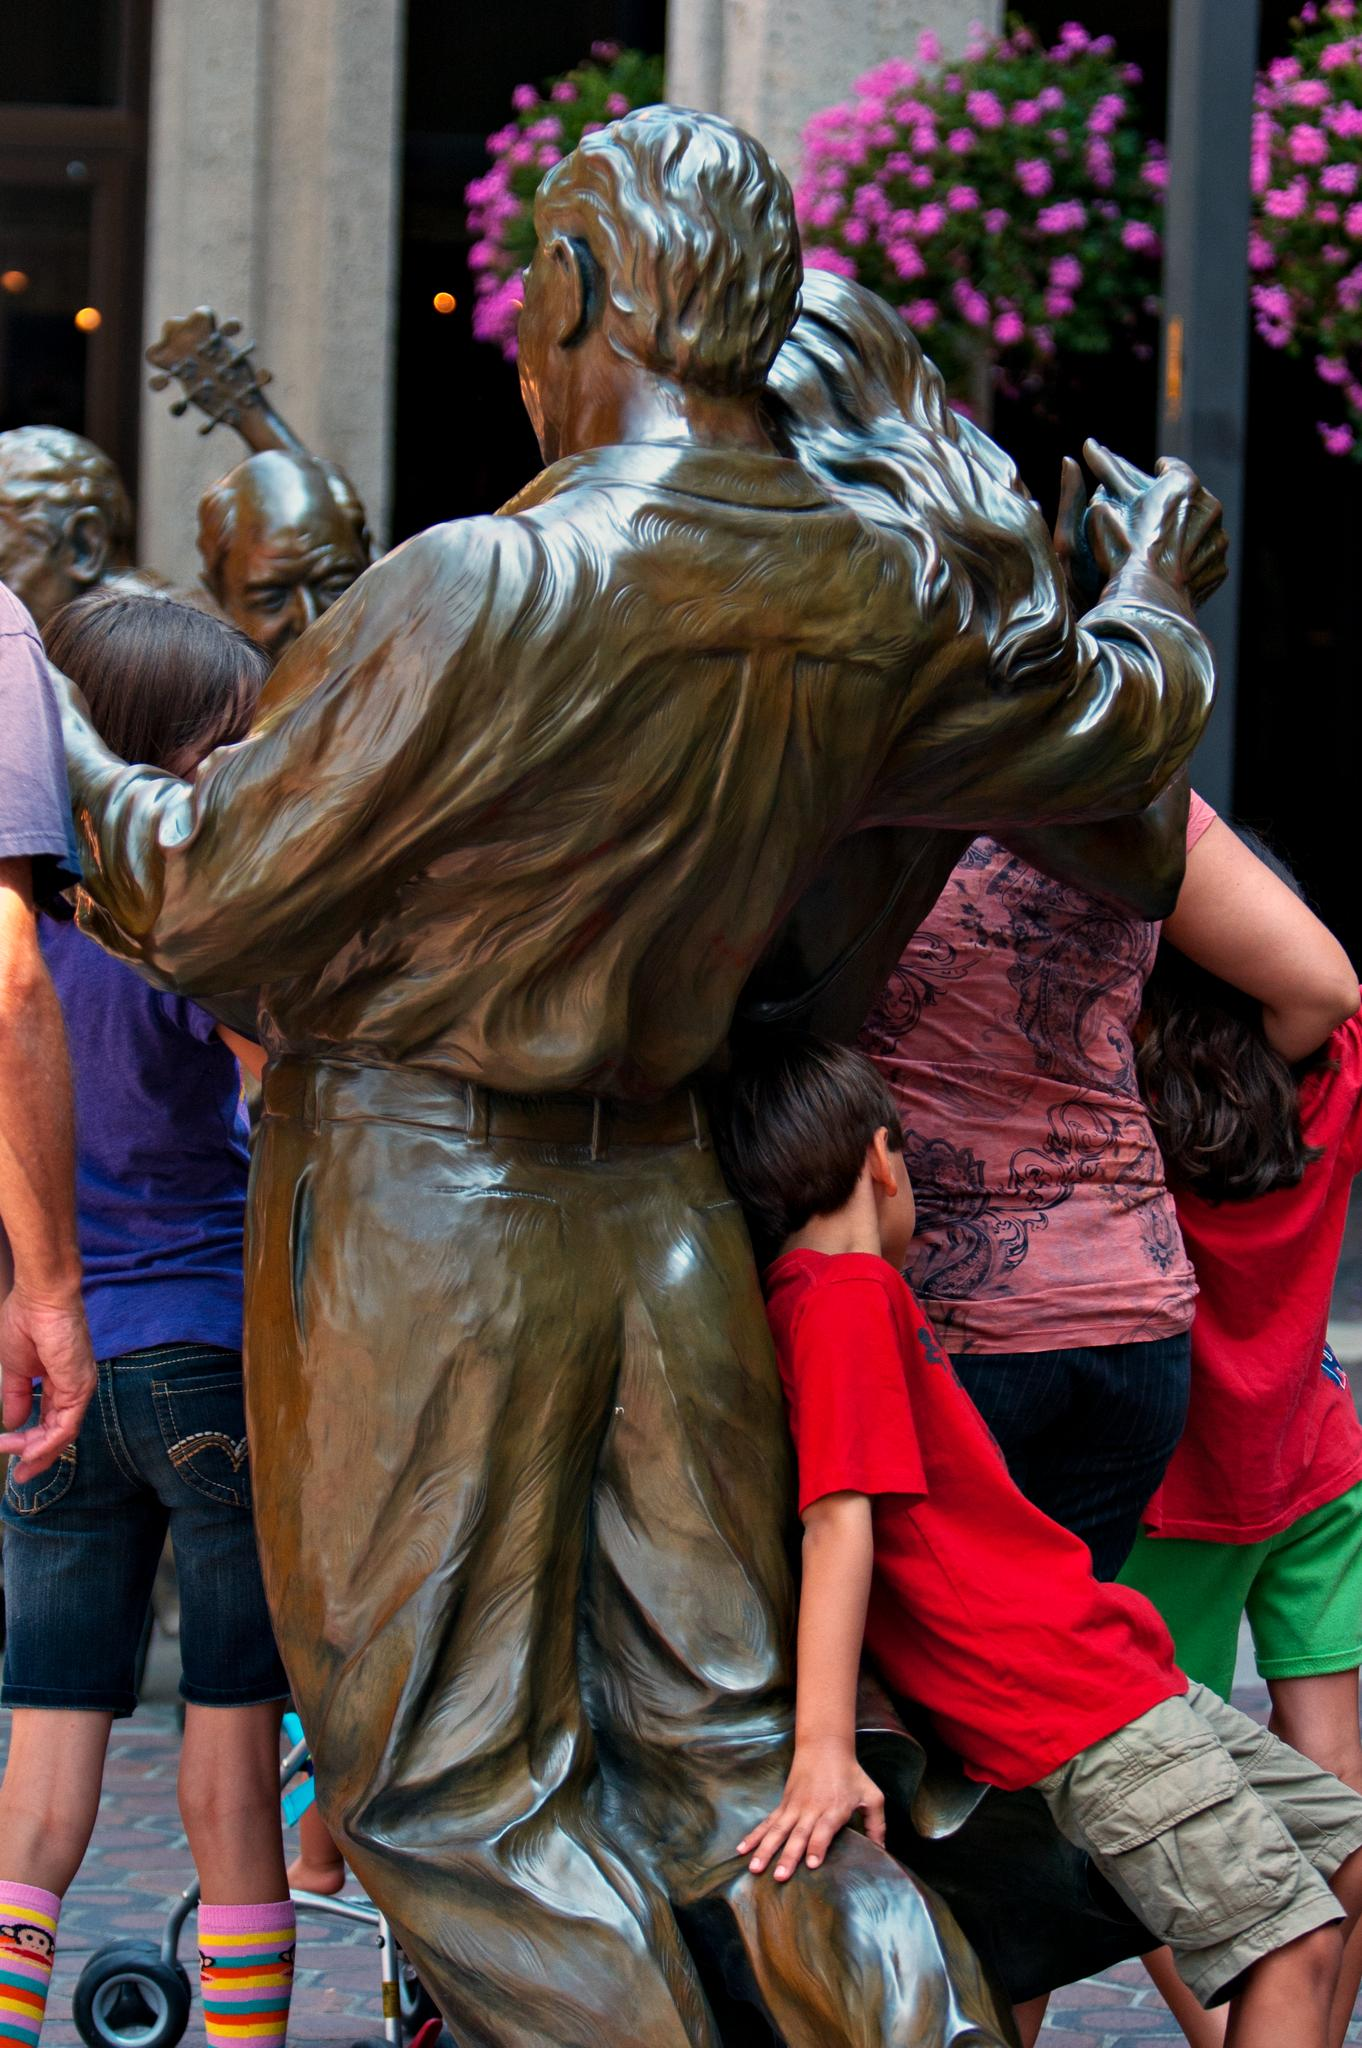 People & Statues by Dealsnphotos